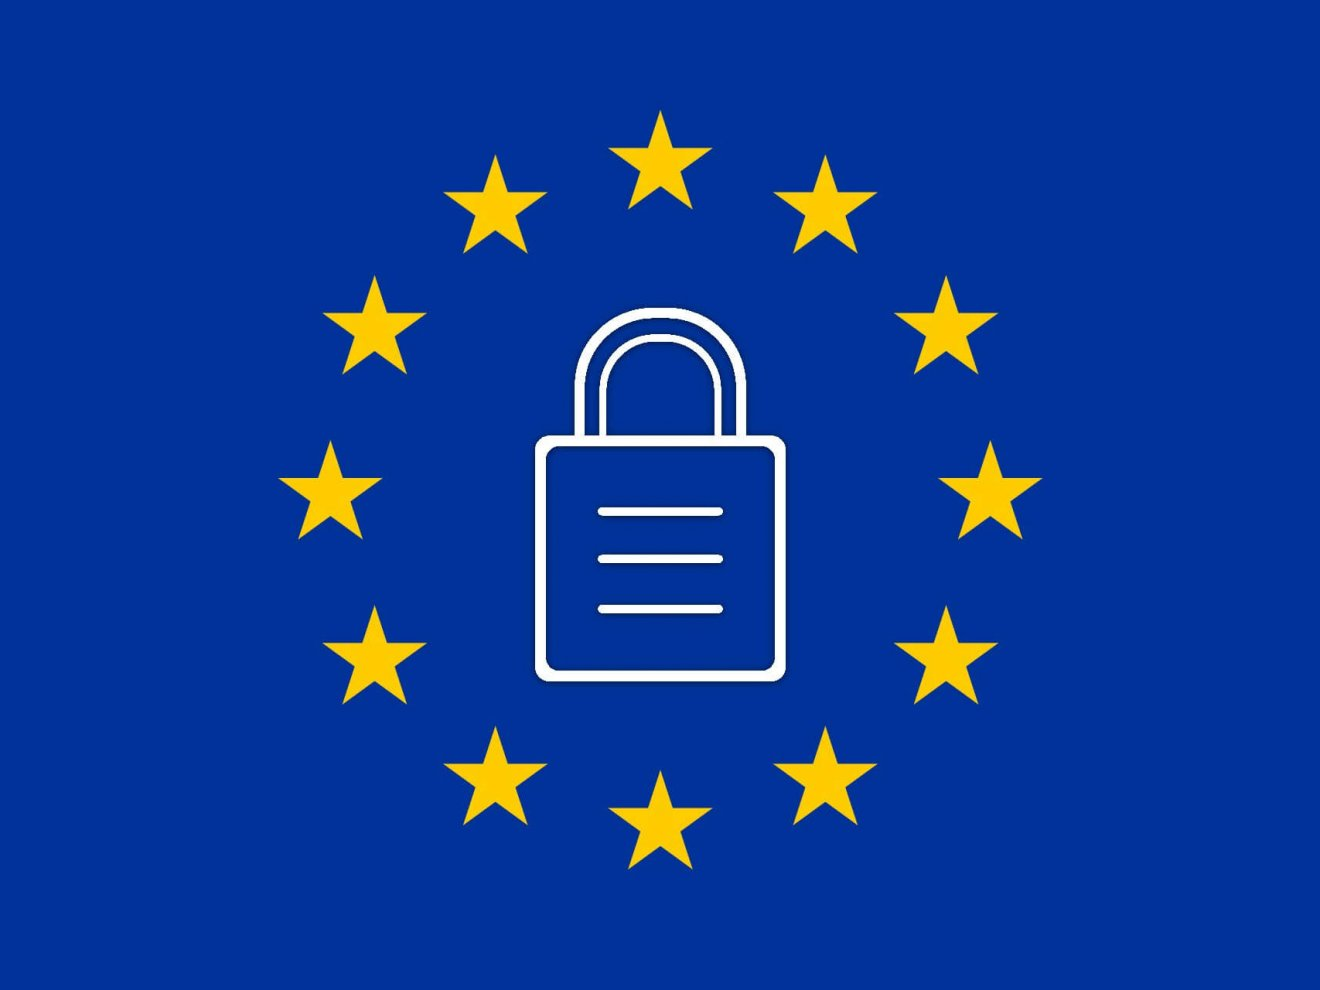 EU Flag with a padlock on it